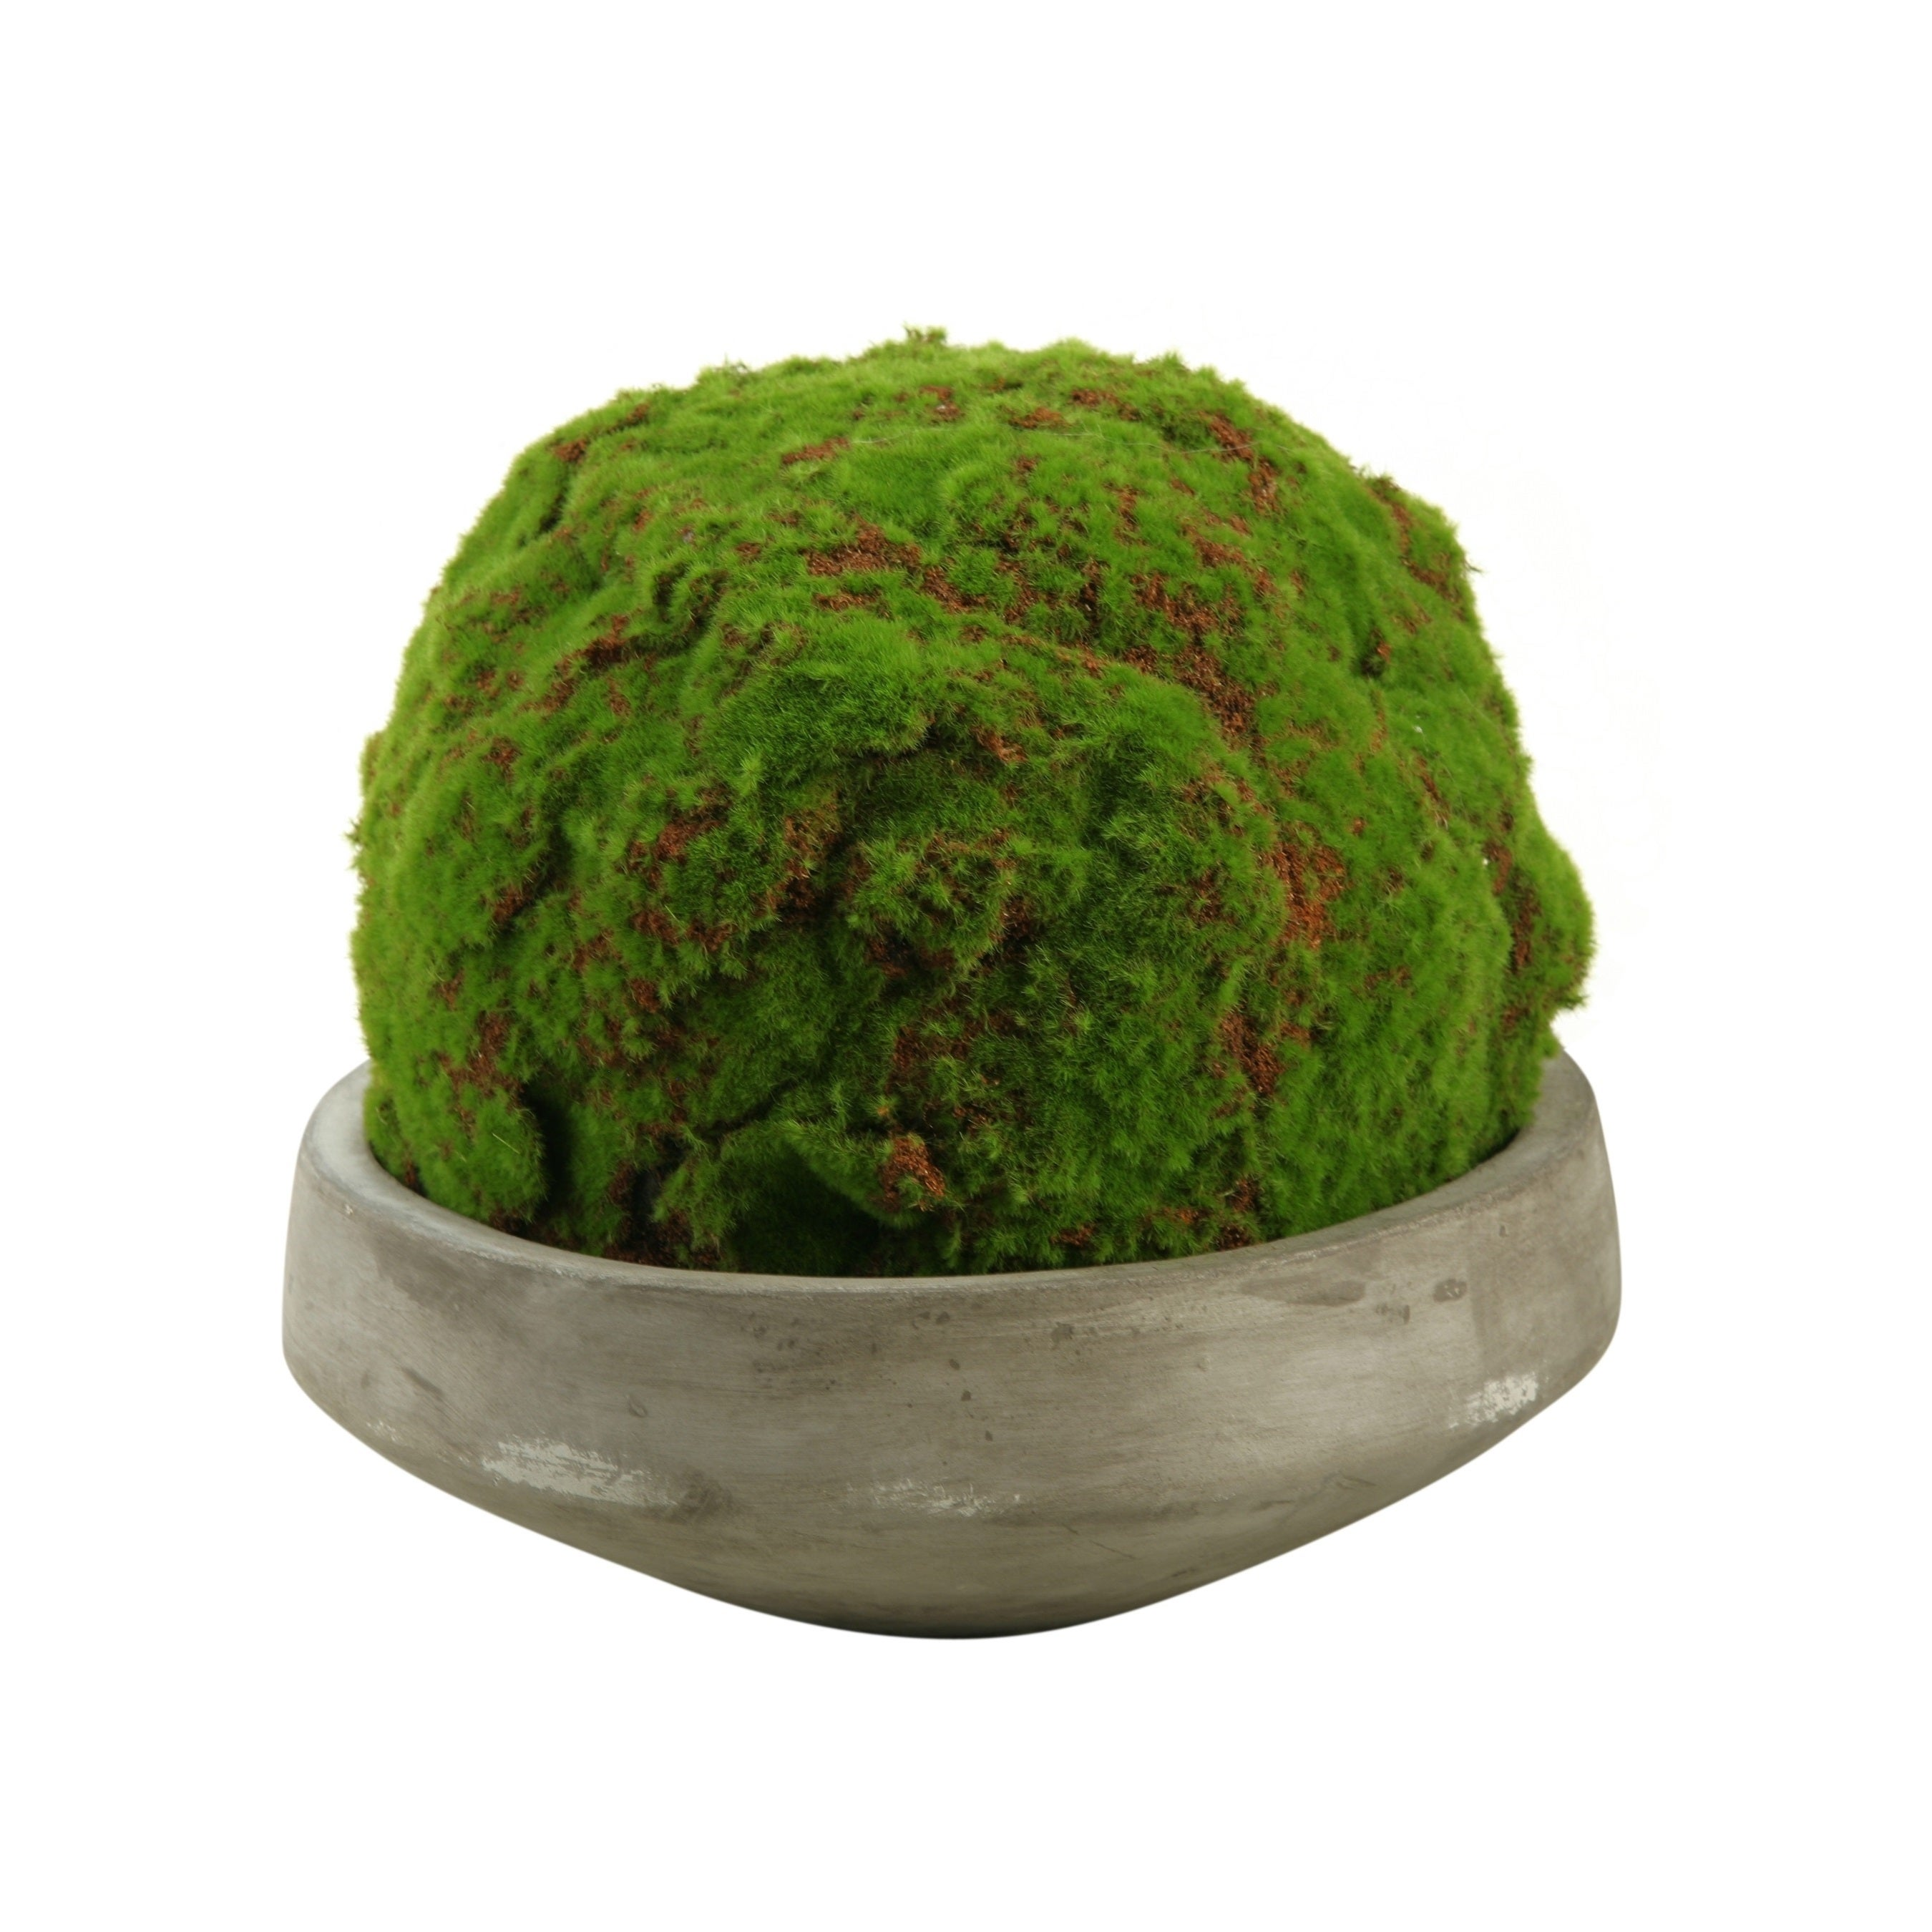 D&W Silks Large Moss (Green) Ball in Round Concrete Bowl ...